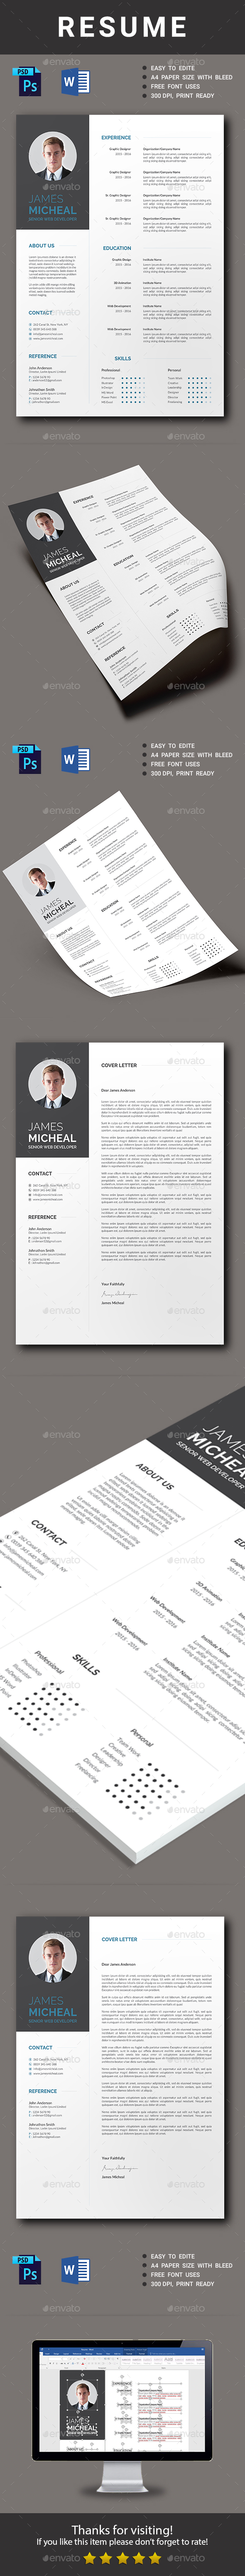 GraphicRiver Resume 20789590